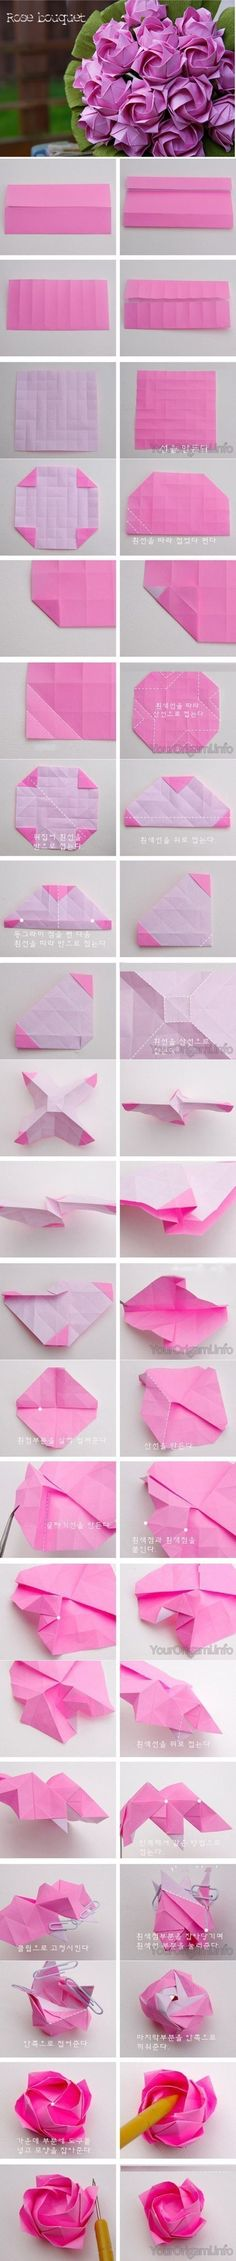 DIY Rose Bouquet diy craft crafts easy crafts diy ideas diy crafts crafty diy decor craft decorations how to craft flowers paper crafts tutorials teen crafts